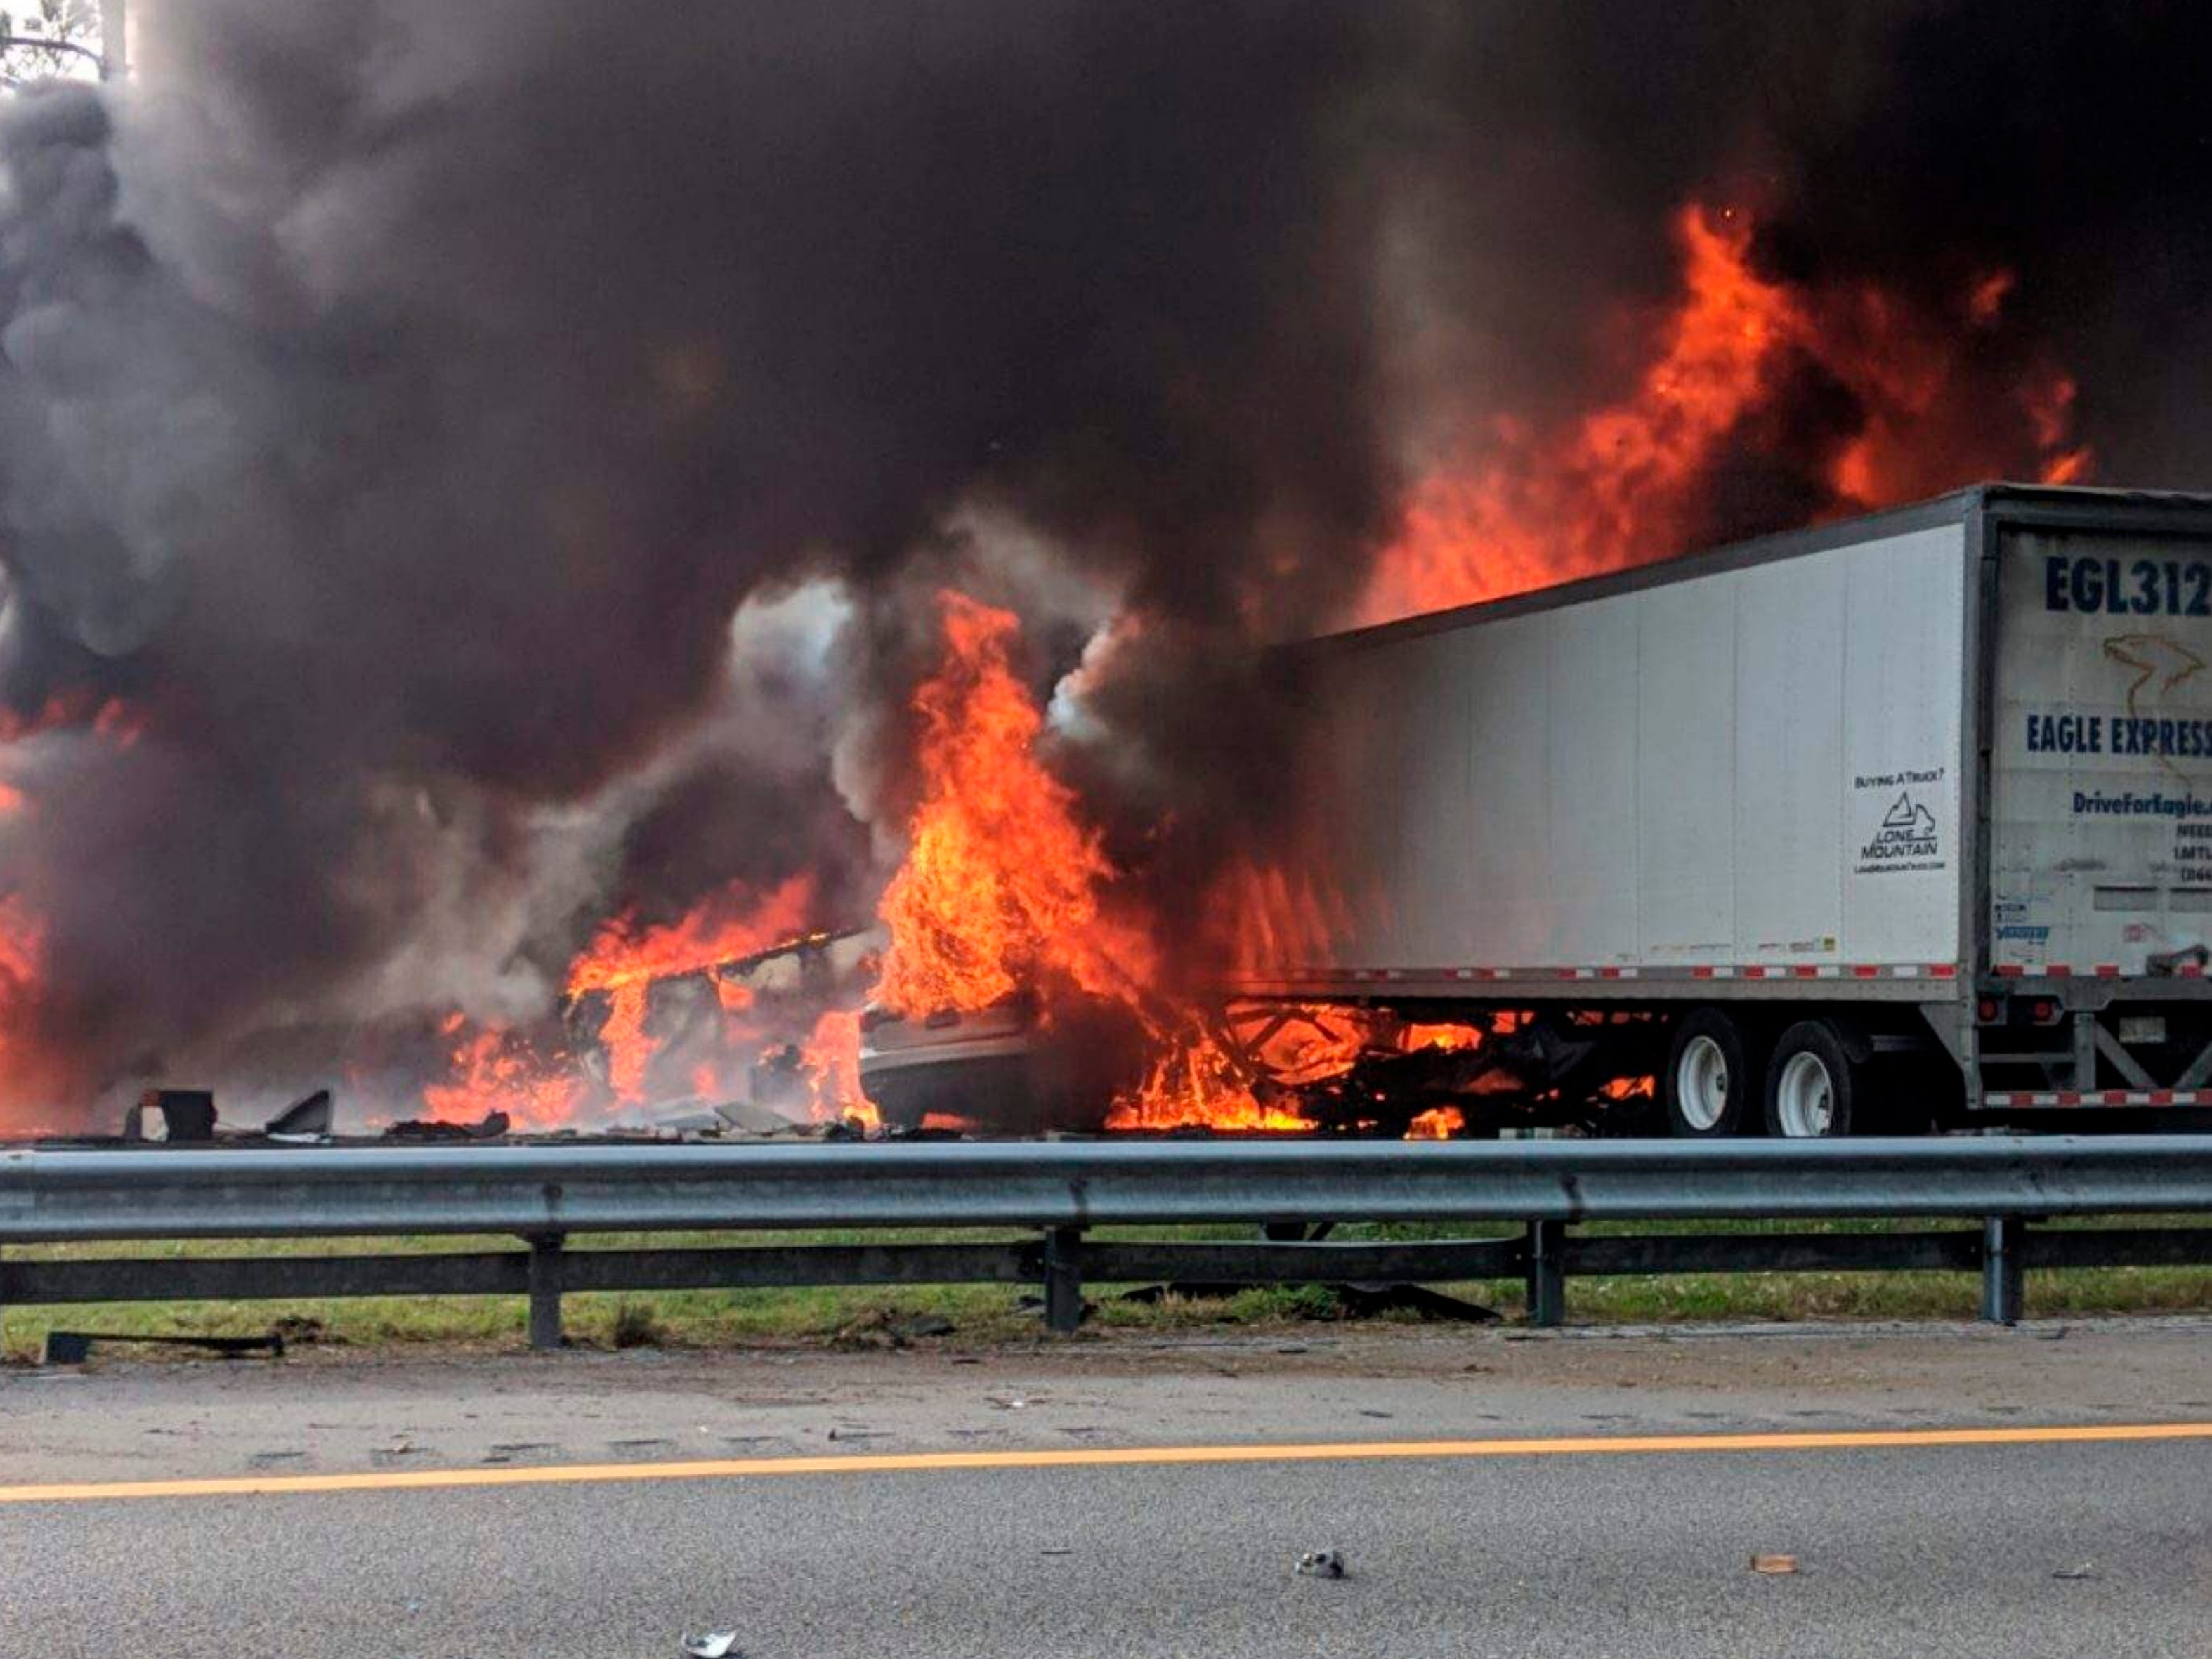 This image taken from a Florida 511 traffic camera and provided by the Alachua County Fire Rescue, shows a fiery crash along Interstate 75, Jan. 3, 2019, about a mile south of Alachua, near Gainesville. The crash killed seven people and injured several others. A diesel fuel spill sparked a massive fire on the interstate.